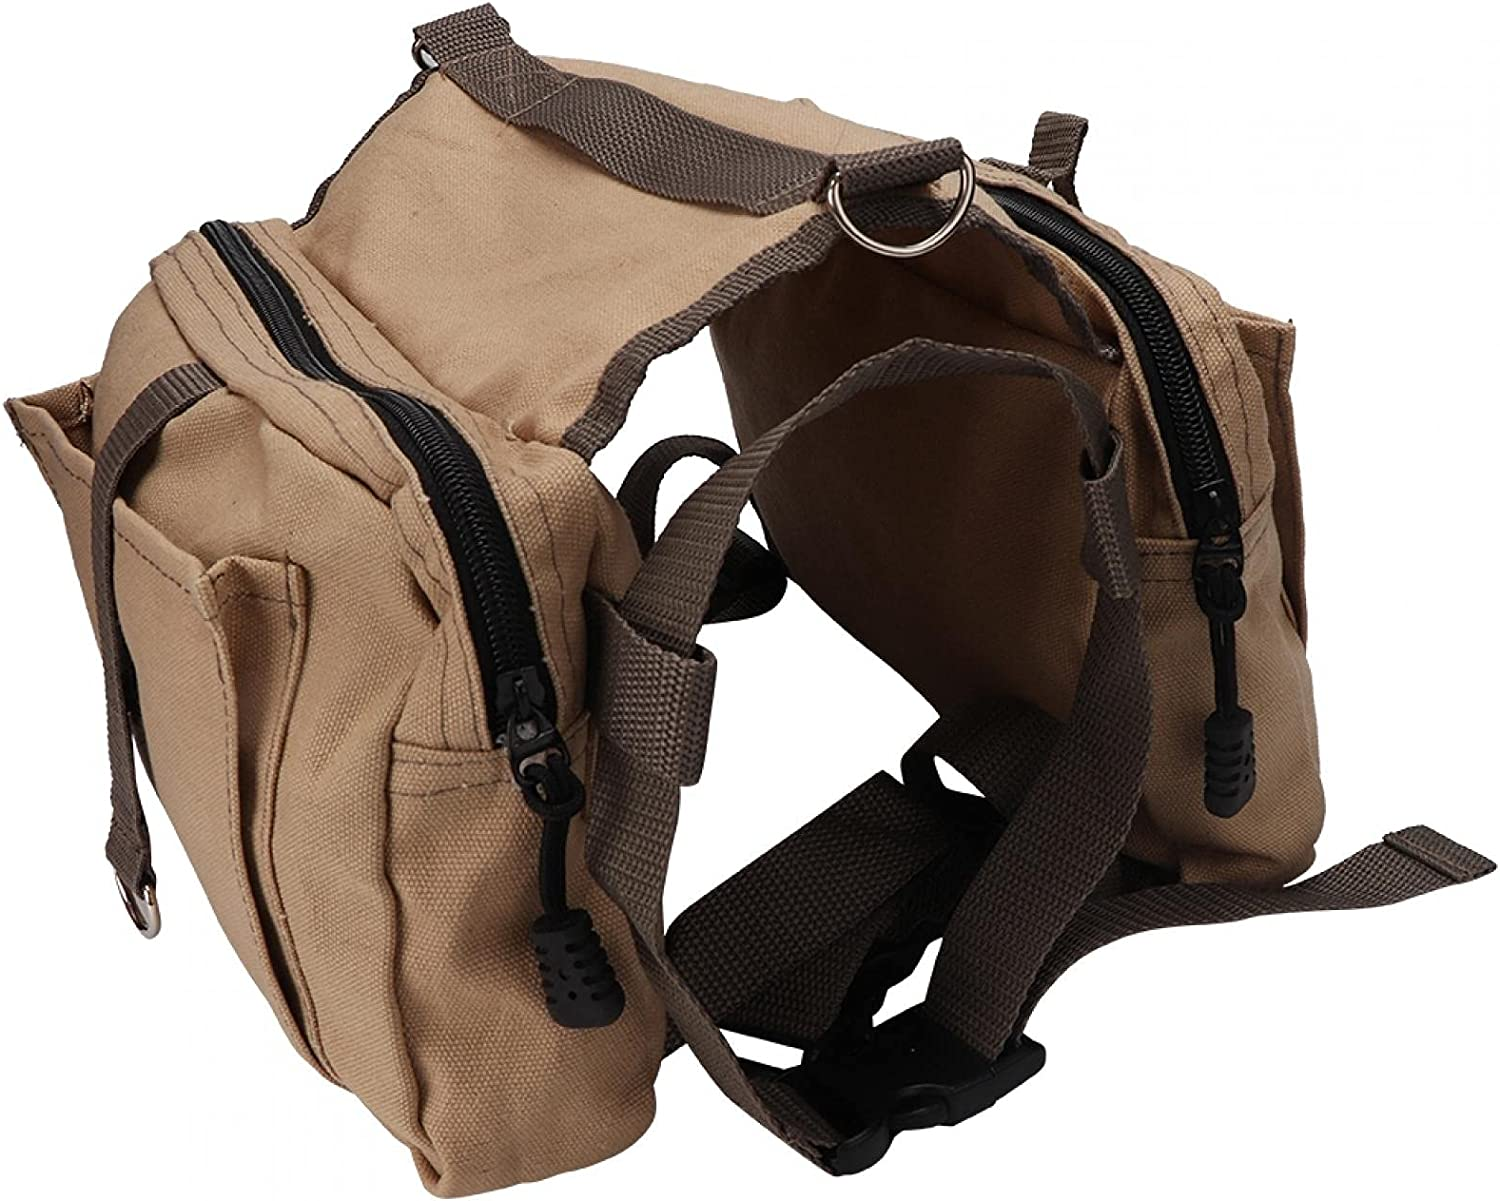 Courier shipping free shipping 01 Dog Award-winning store Backpack Hiking Wear-Resistant f Breathable